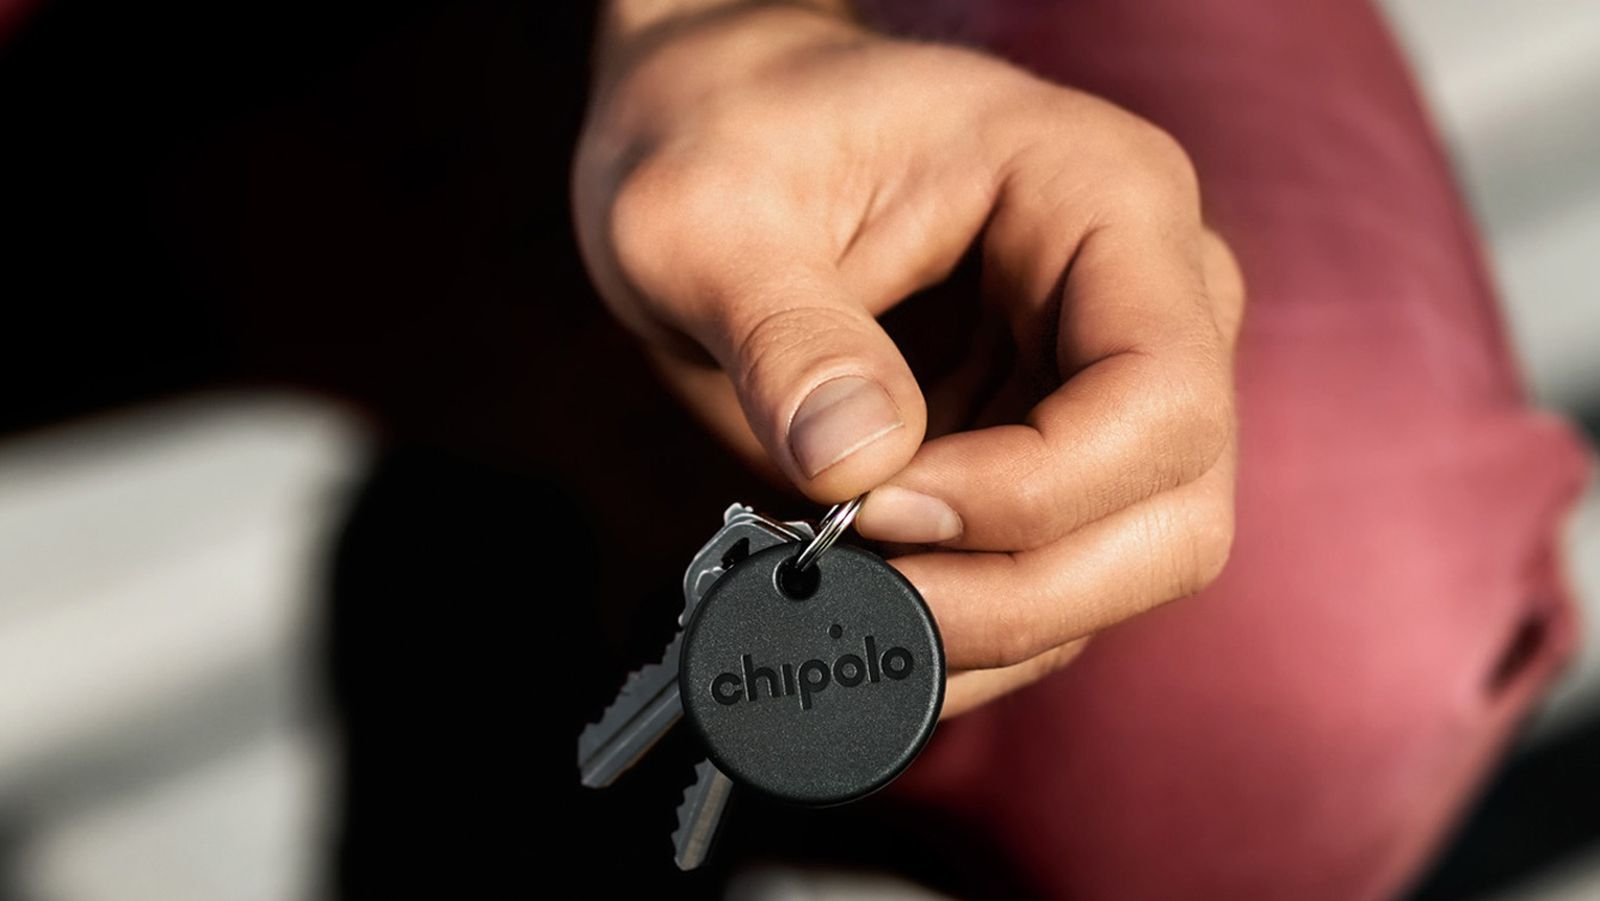 photo of Chipolo Announces New 'ONE Spot' Item Tracker With Find My Integration image